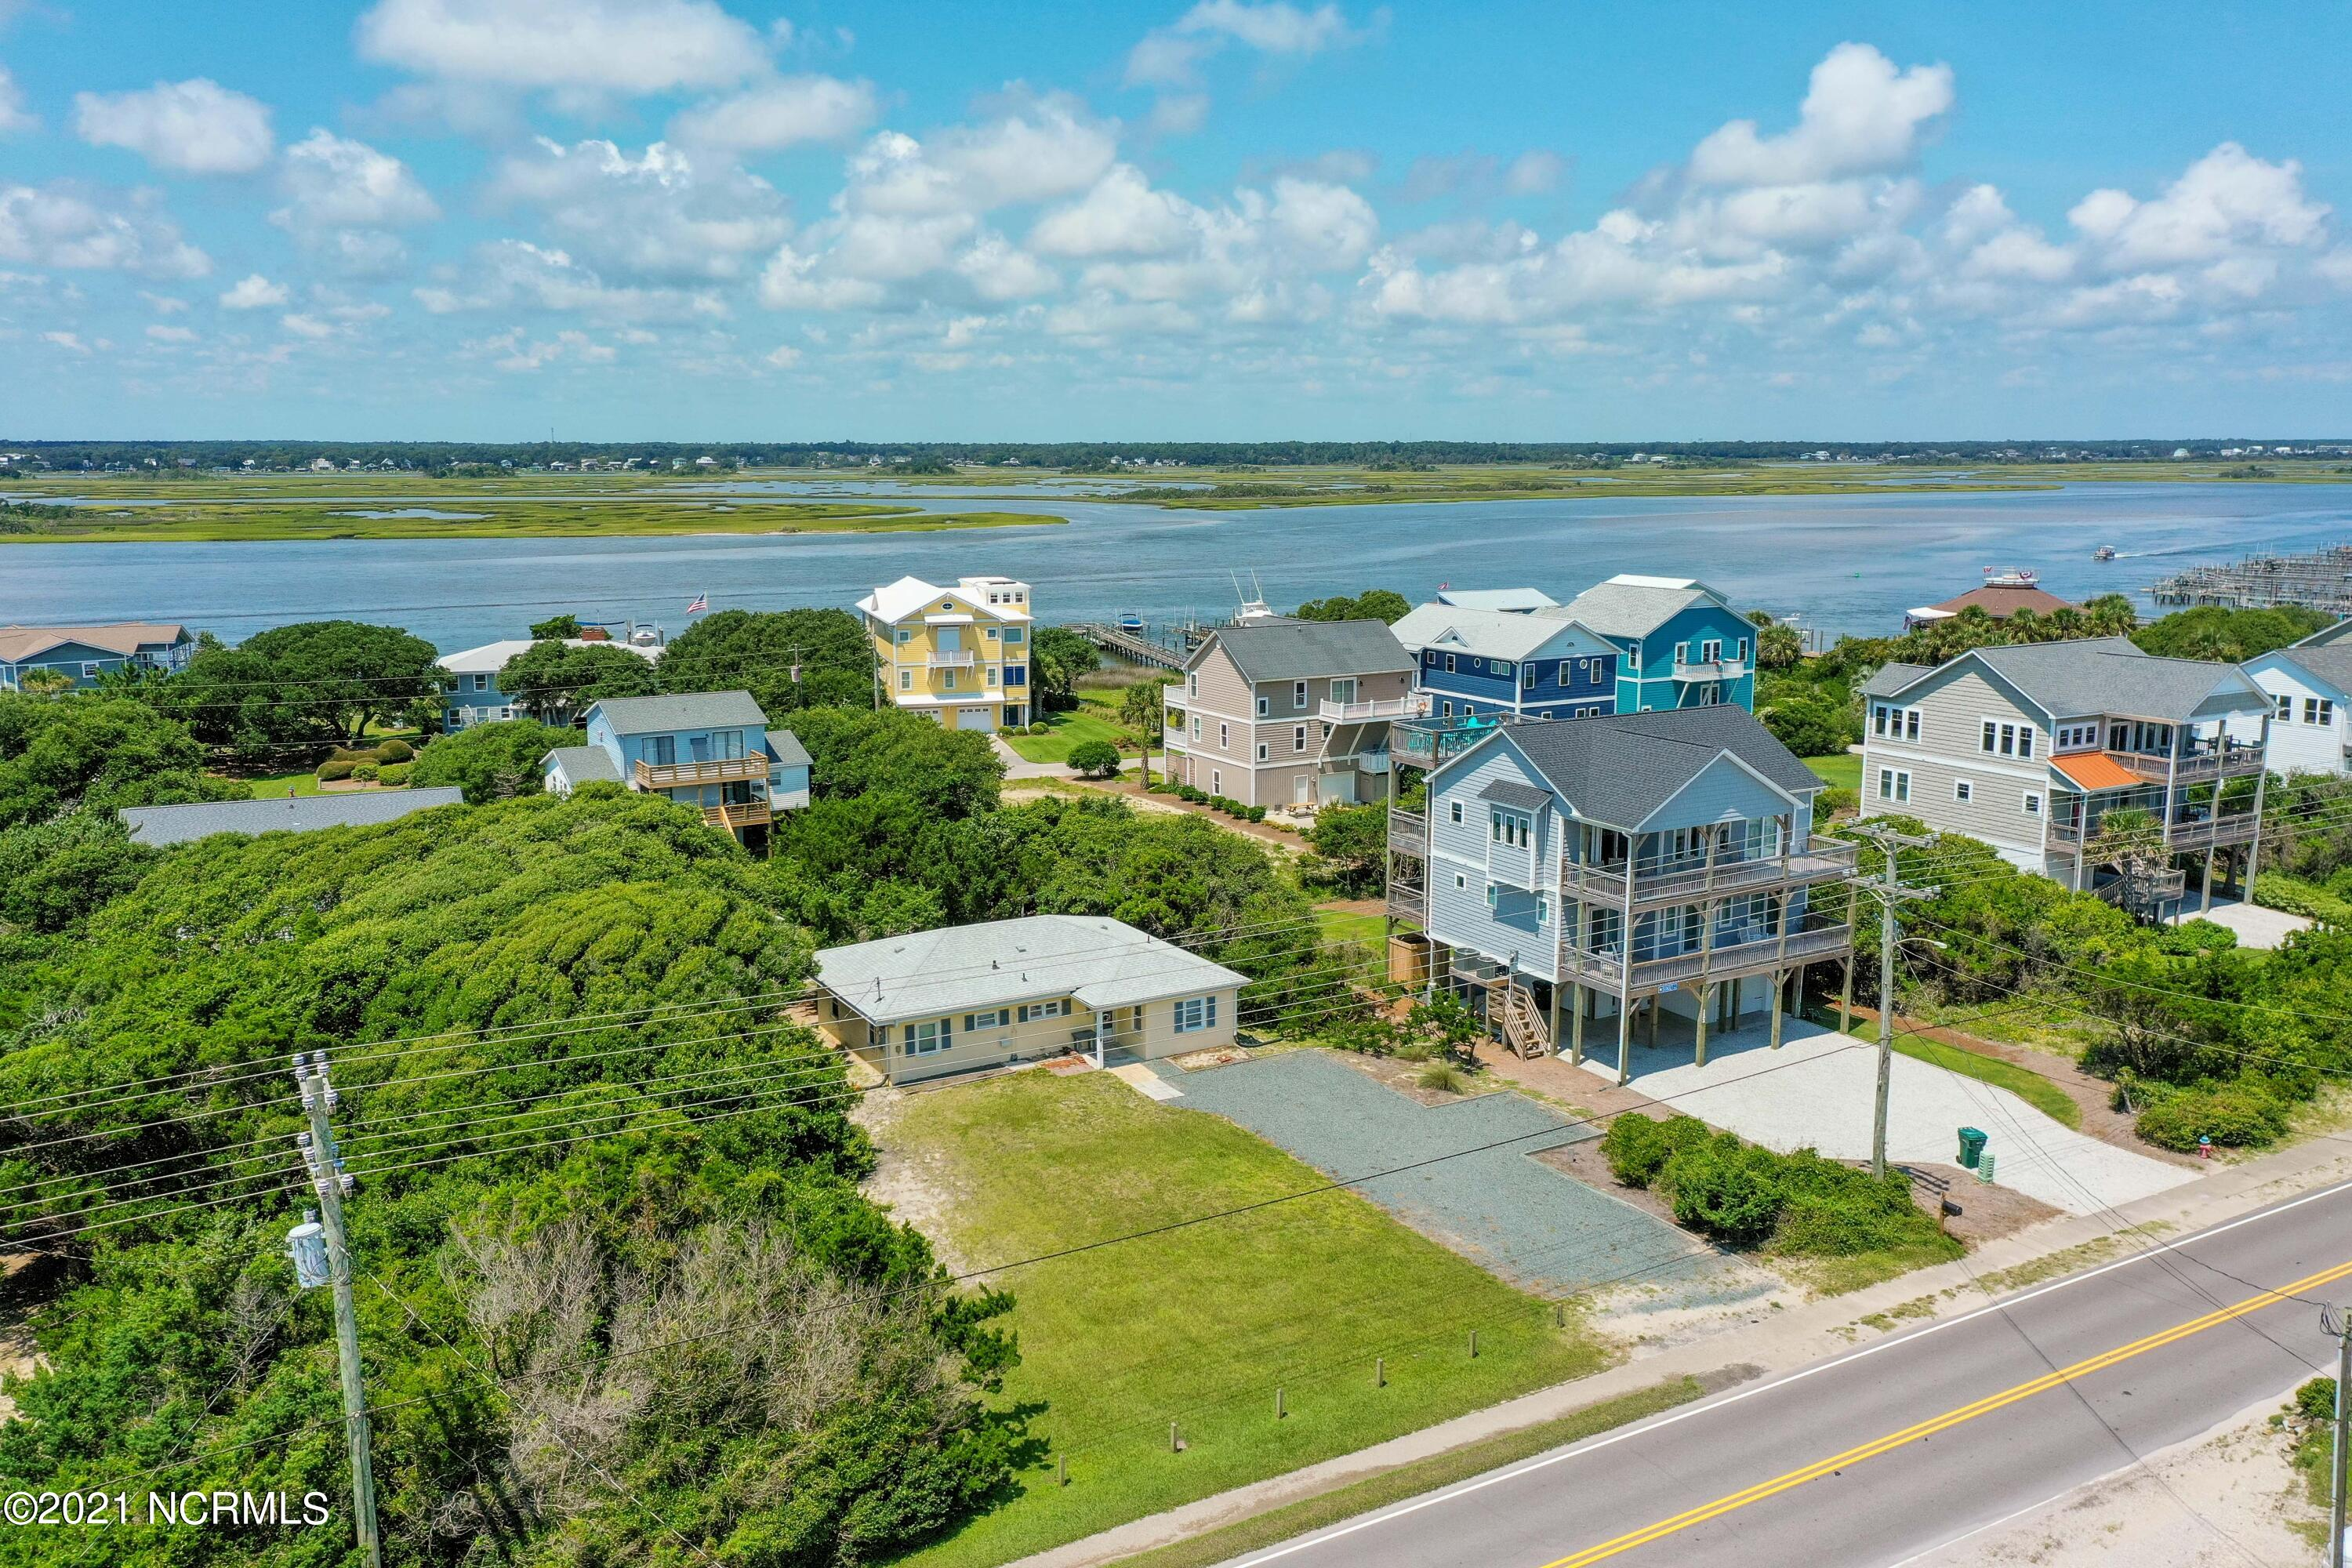 124 Anderson Boulevard, Topsail Beach, North Carolina 28445, 3 Bedrooms Bedrooms, 4 Rooms Rooms,2 BathroomsBathrooms,Single family residence,For sale,Anderson,100284809